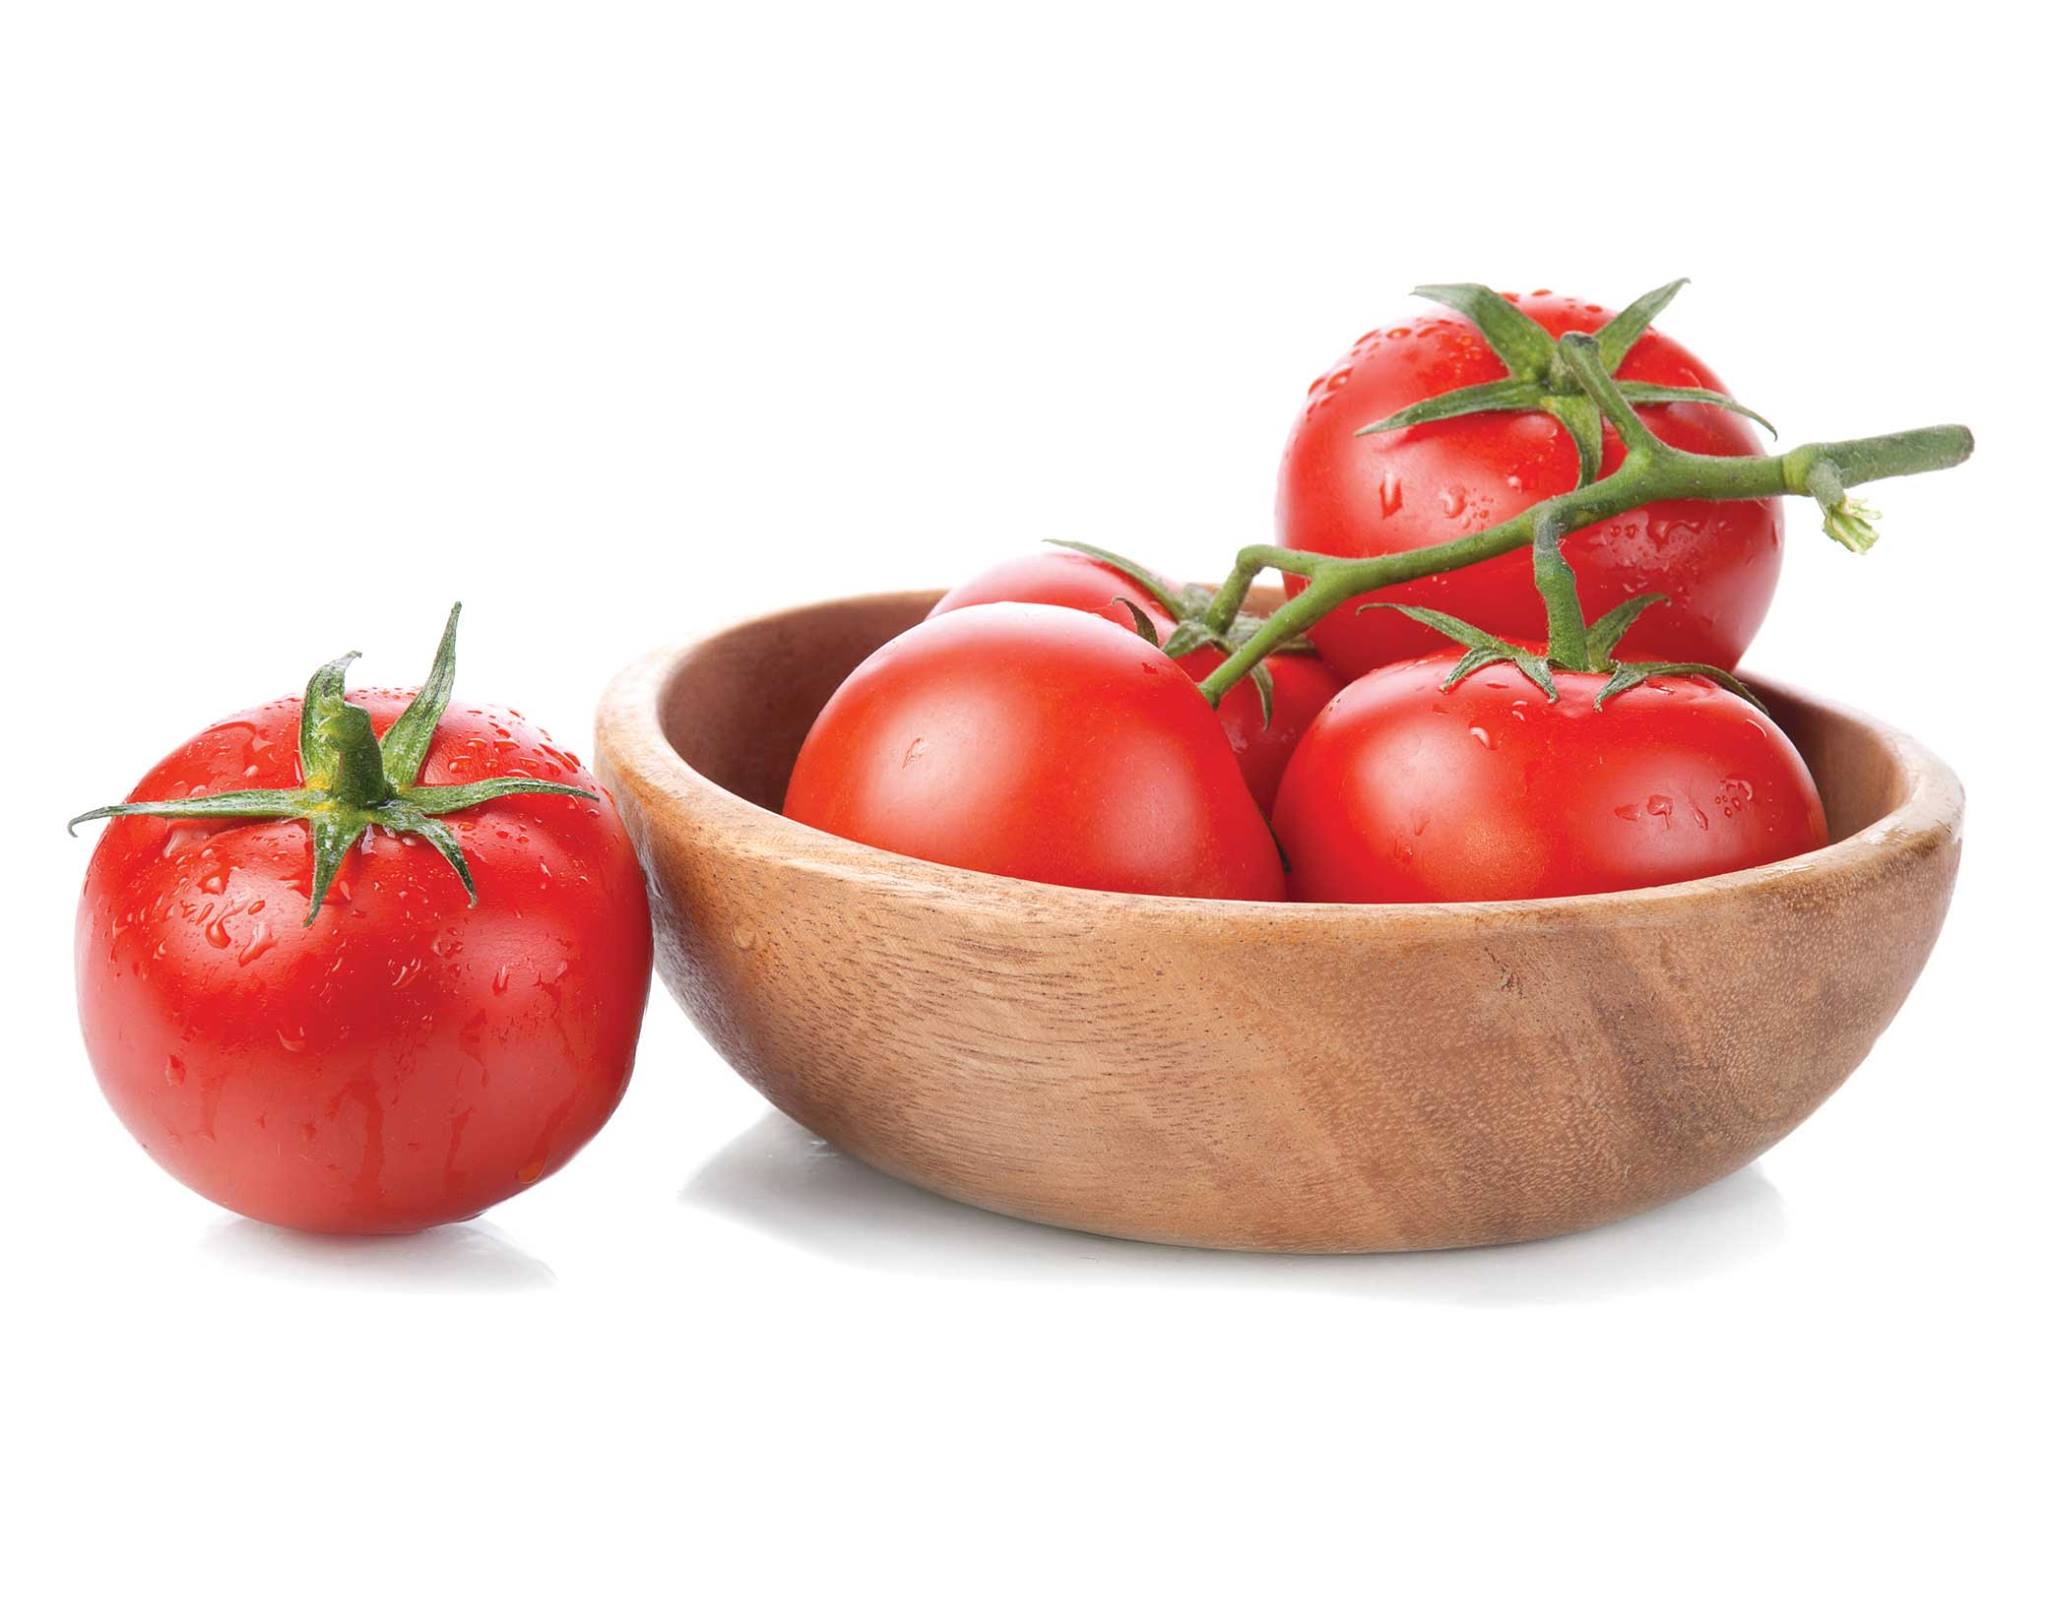 Have Tomato rich diet to fight Cancer